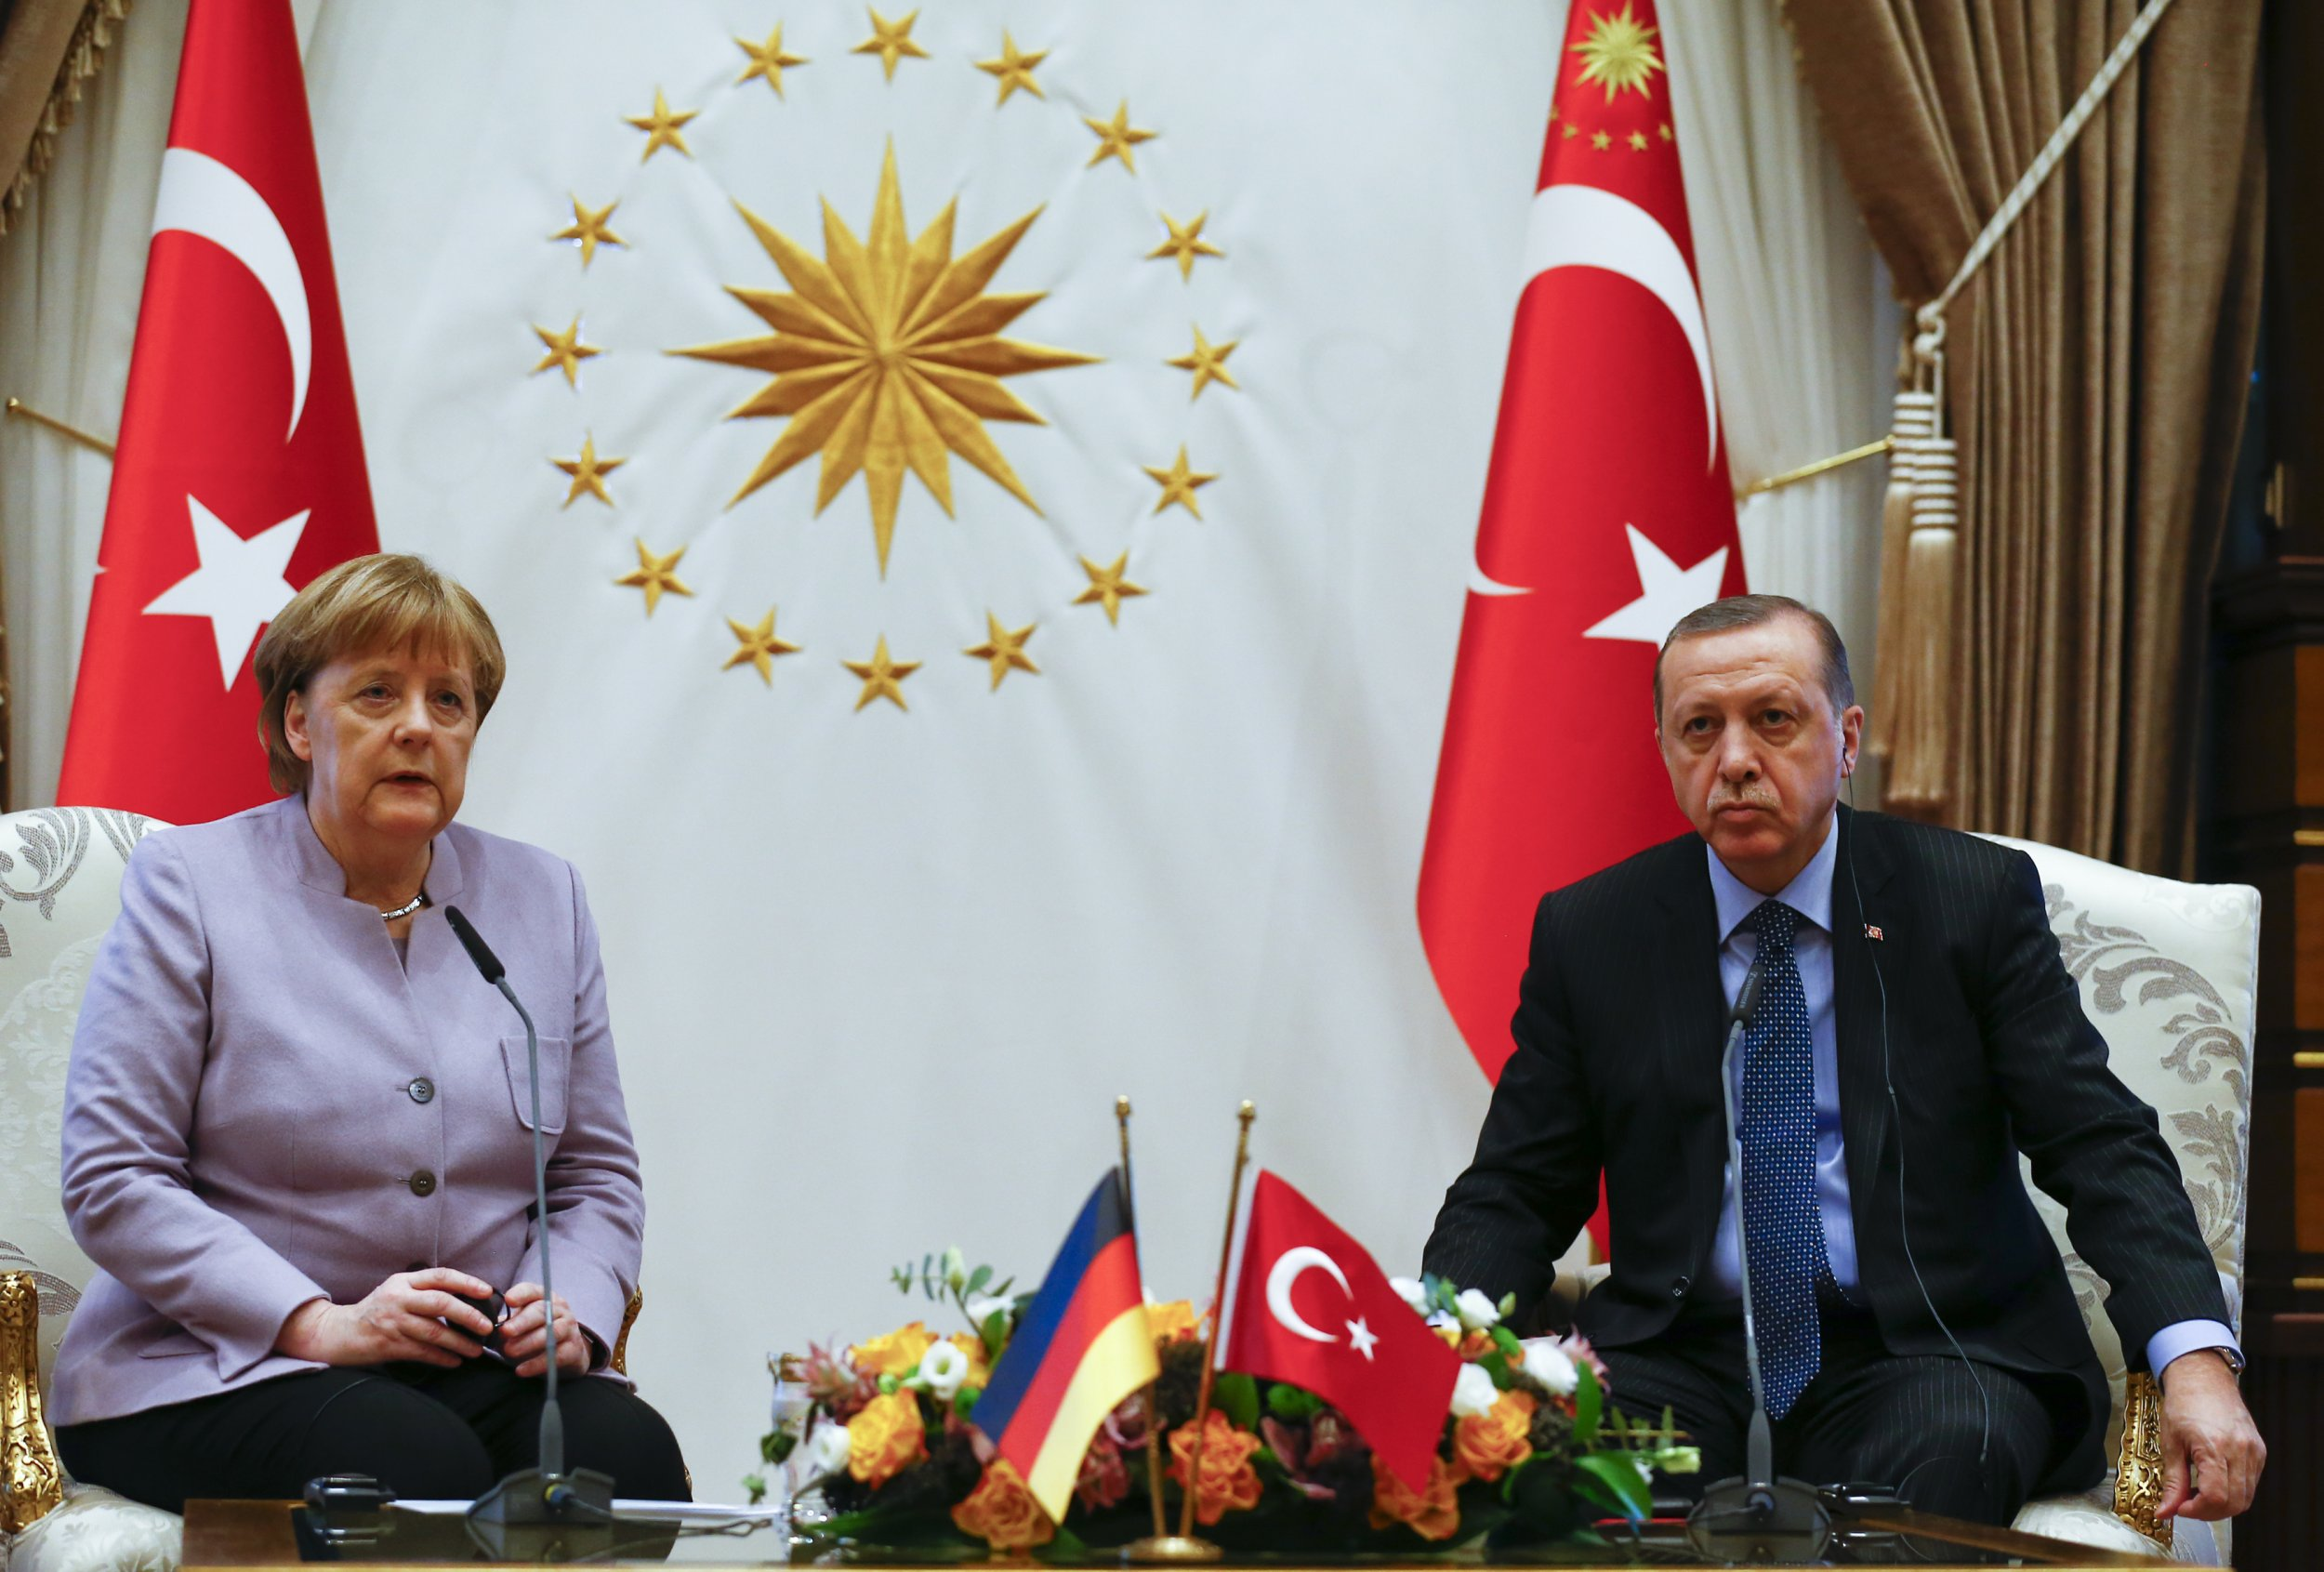 'We Need Germany,' Says Turkish Minister to Bemusement From German Politicians